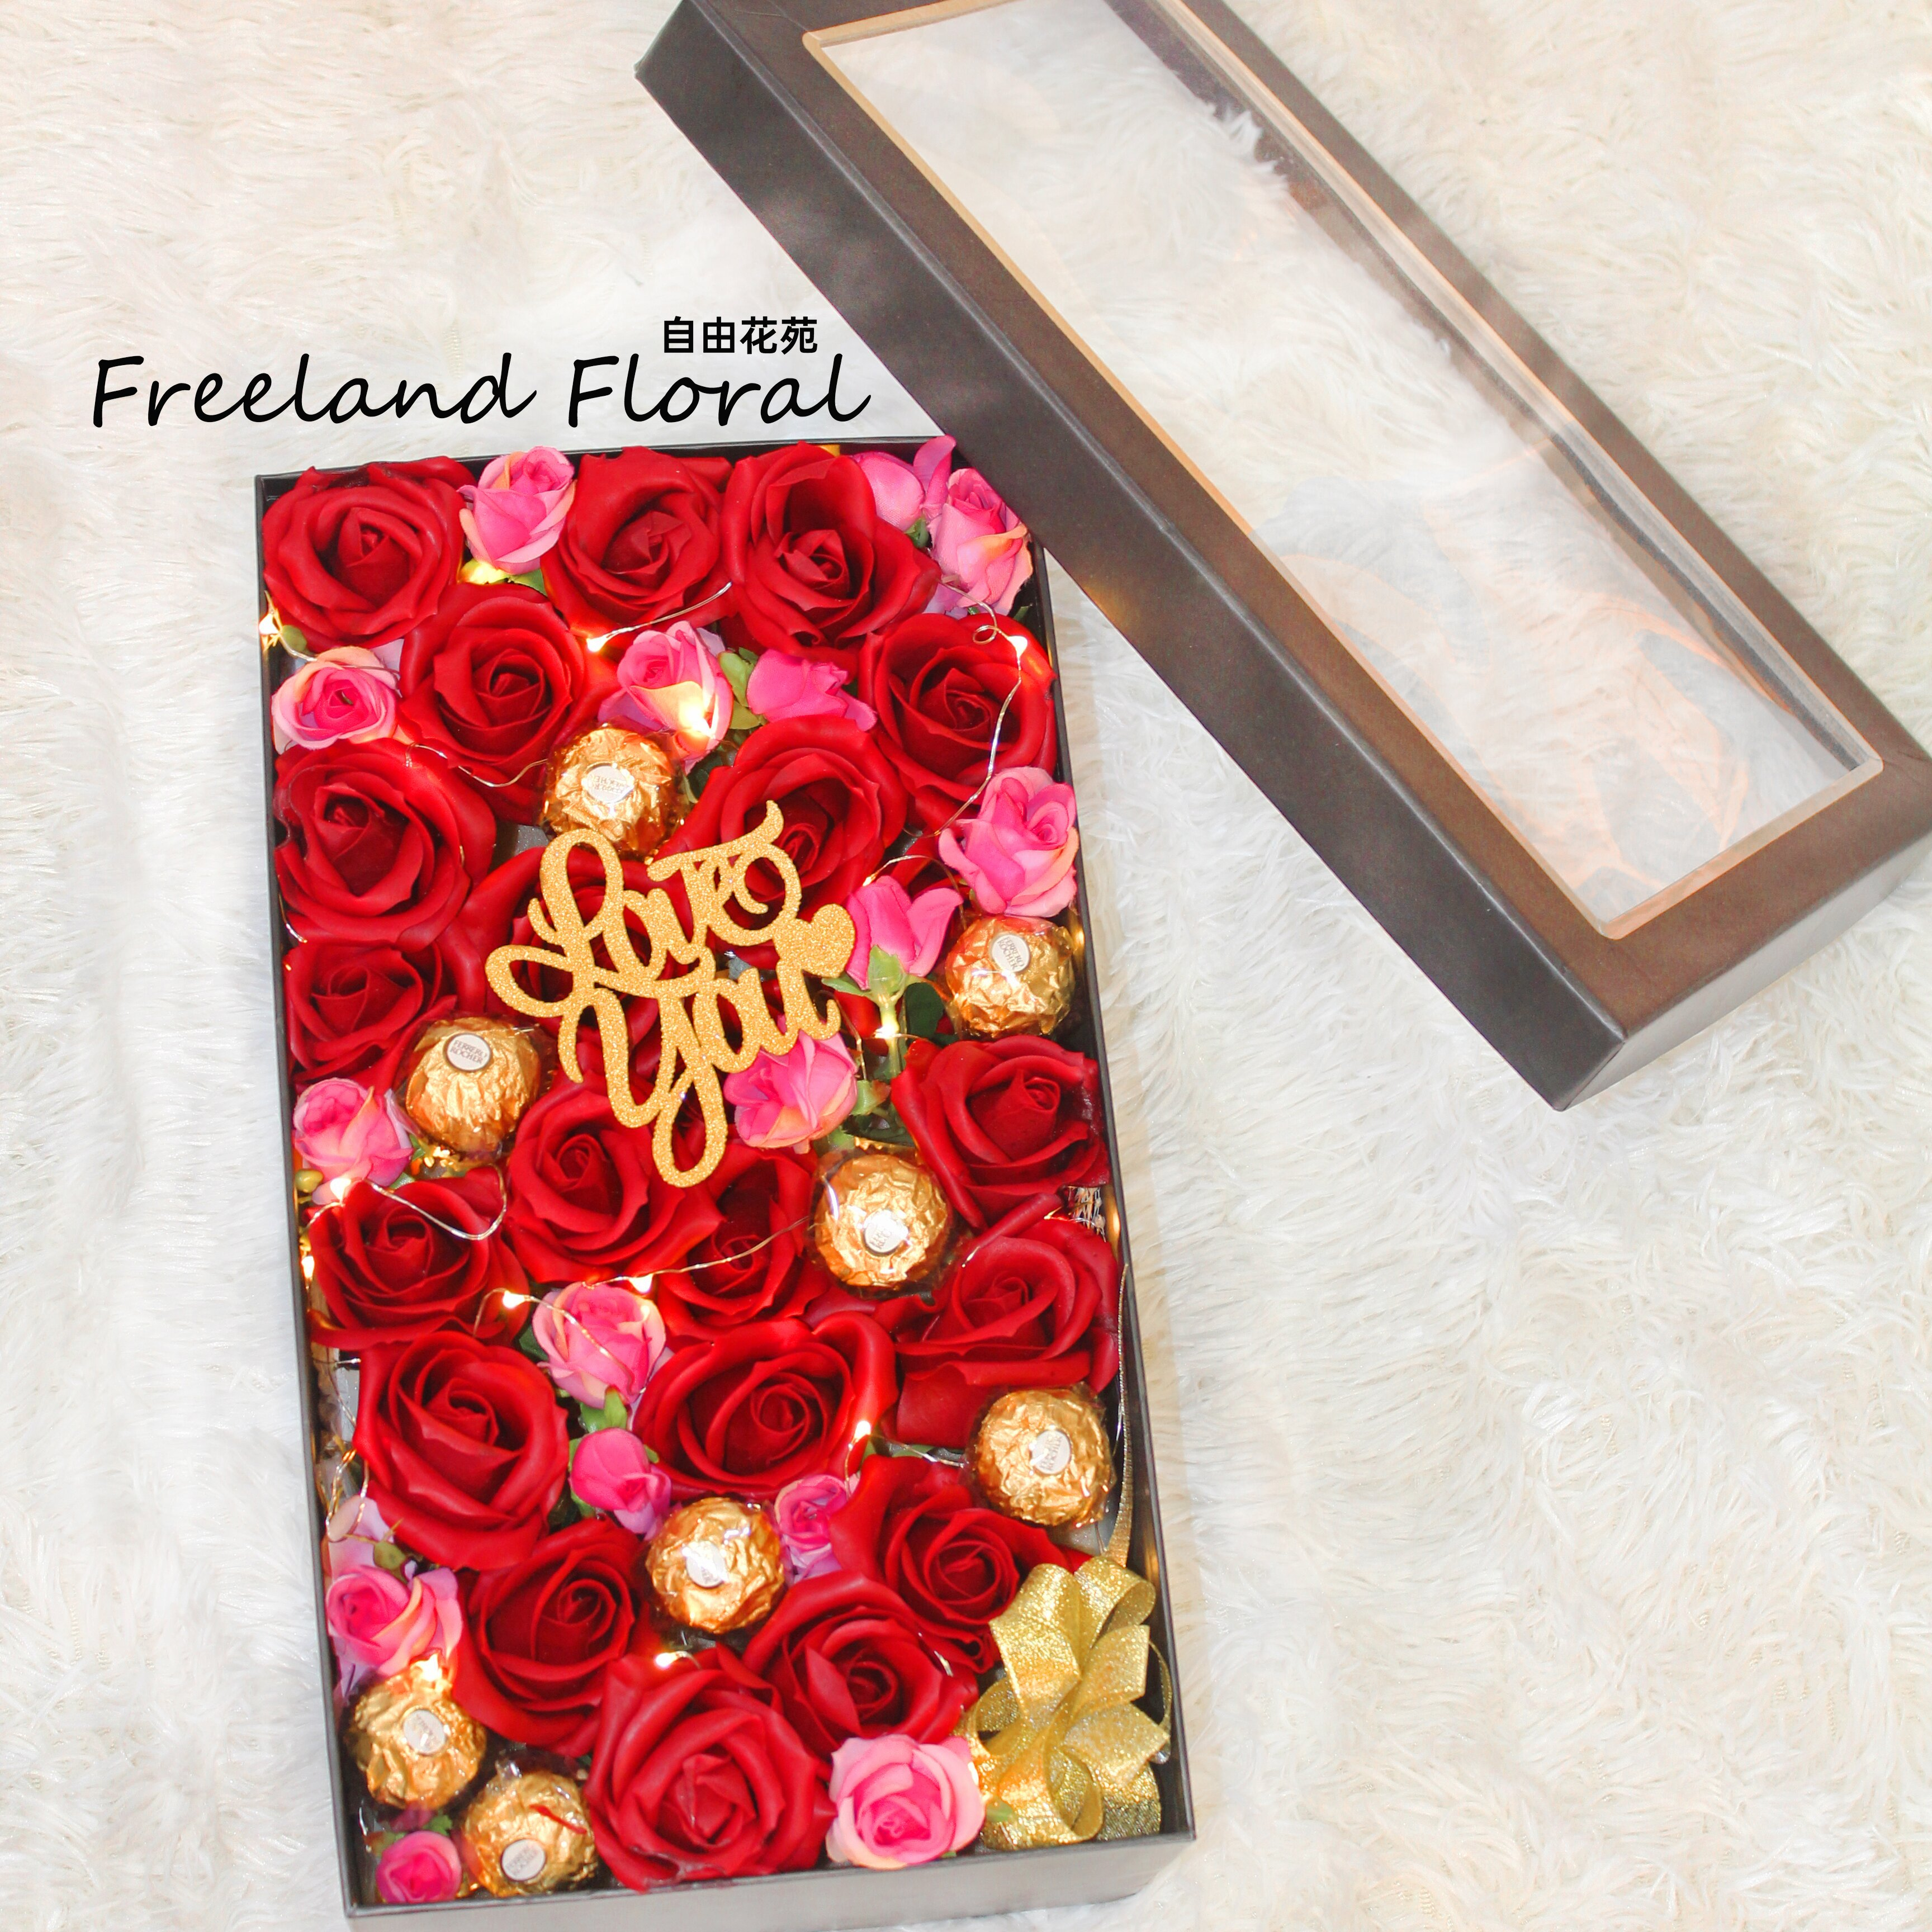 All Of The Star - Freeland Floral 自由花苑